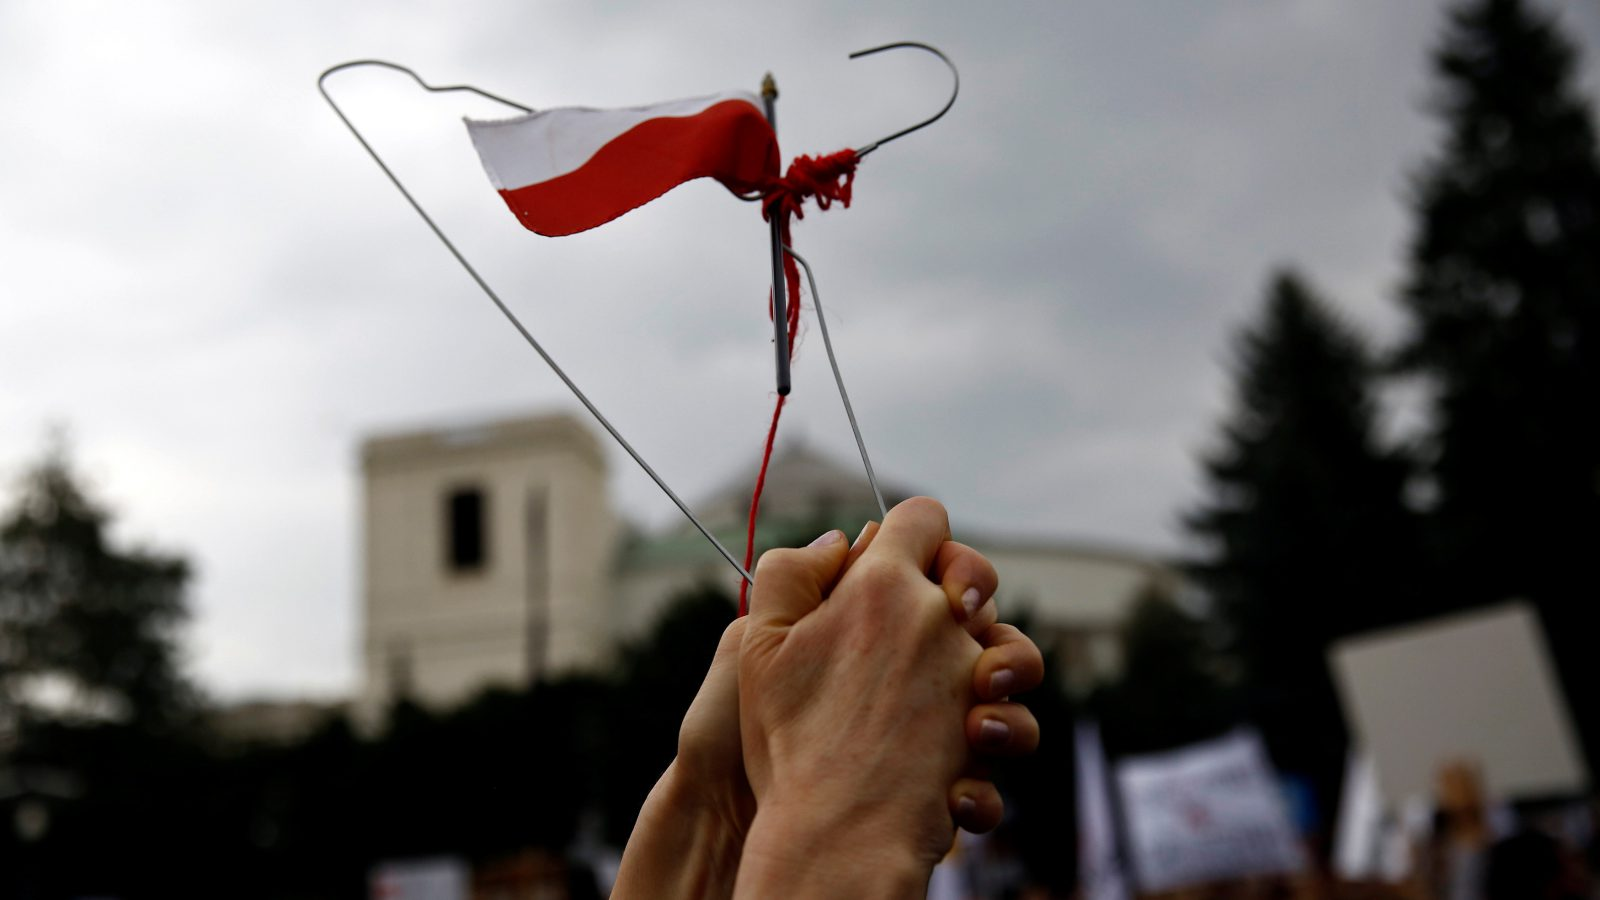 """A woman holds a hanger with the Polish flag attached to it as she takes part in an abortion rights campaigners' demonstration """"Black Protest"""" in front of the Parliament in Warsaw, Poland October 1, 2016. REUTERS/Kacper Pempel - RTSQBYQ"""